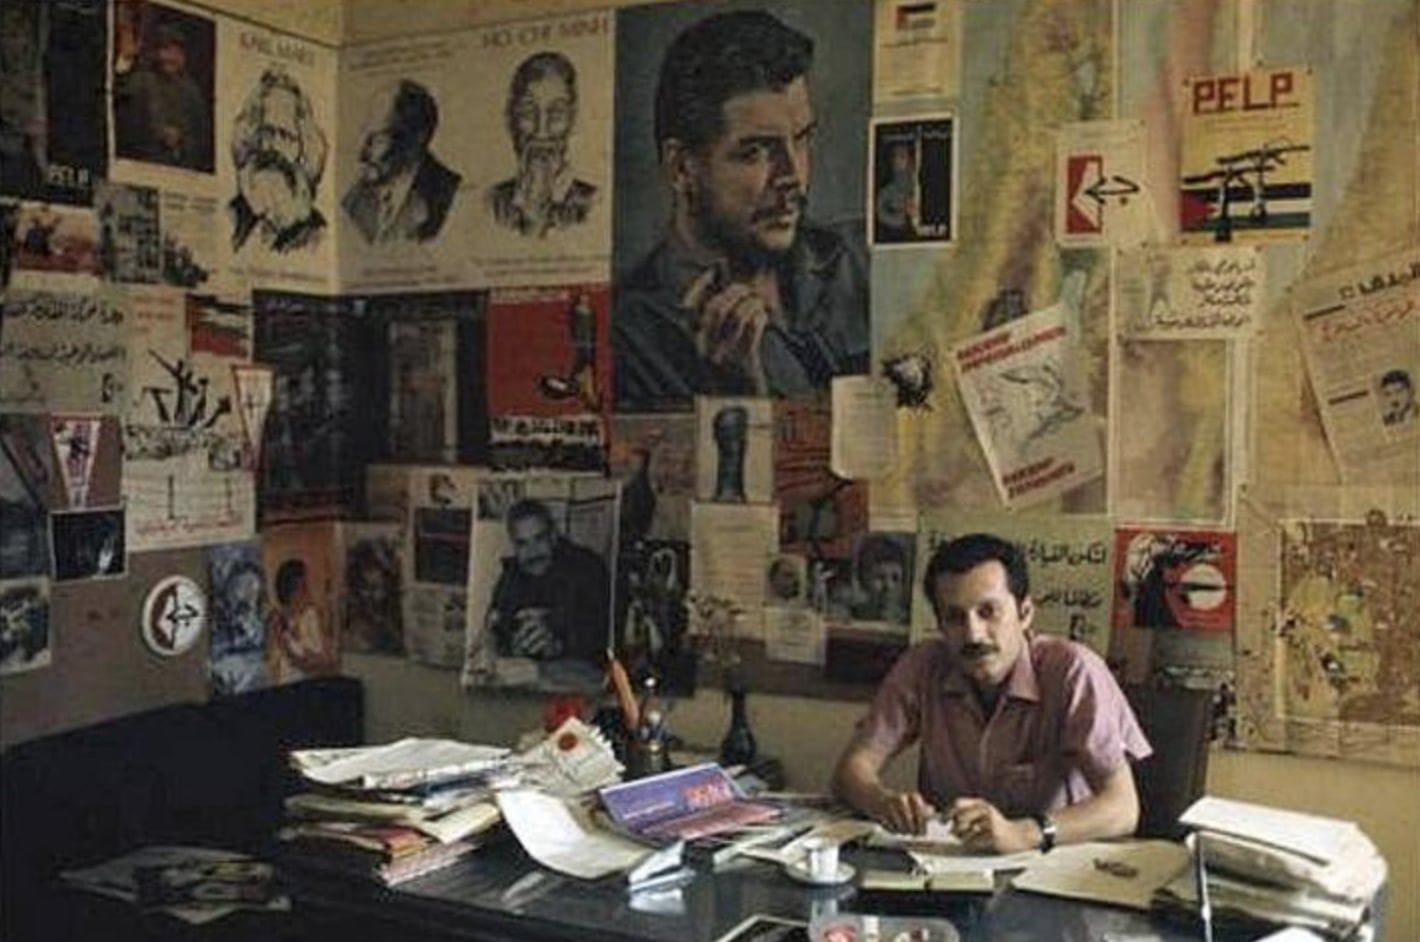 """Ghassan Kanafani in the office in Beiruth. Right above the head of Ghassan Khanafani there is a poster from the Danish organisation KUF, made by Madsen - the poster can be seen in bottom of the section """"PFLP-dokumenter på dansk"""" - PFLP-documents in Danish. Photo: Taken circa 1970 by Bruno Barbey (1941–2020), Moroccan-born French photographer. (CC0 1.0)."""